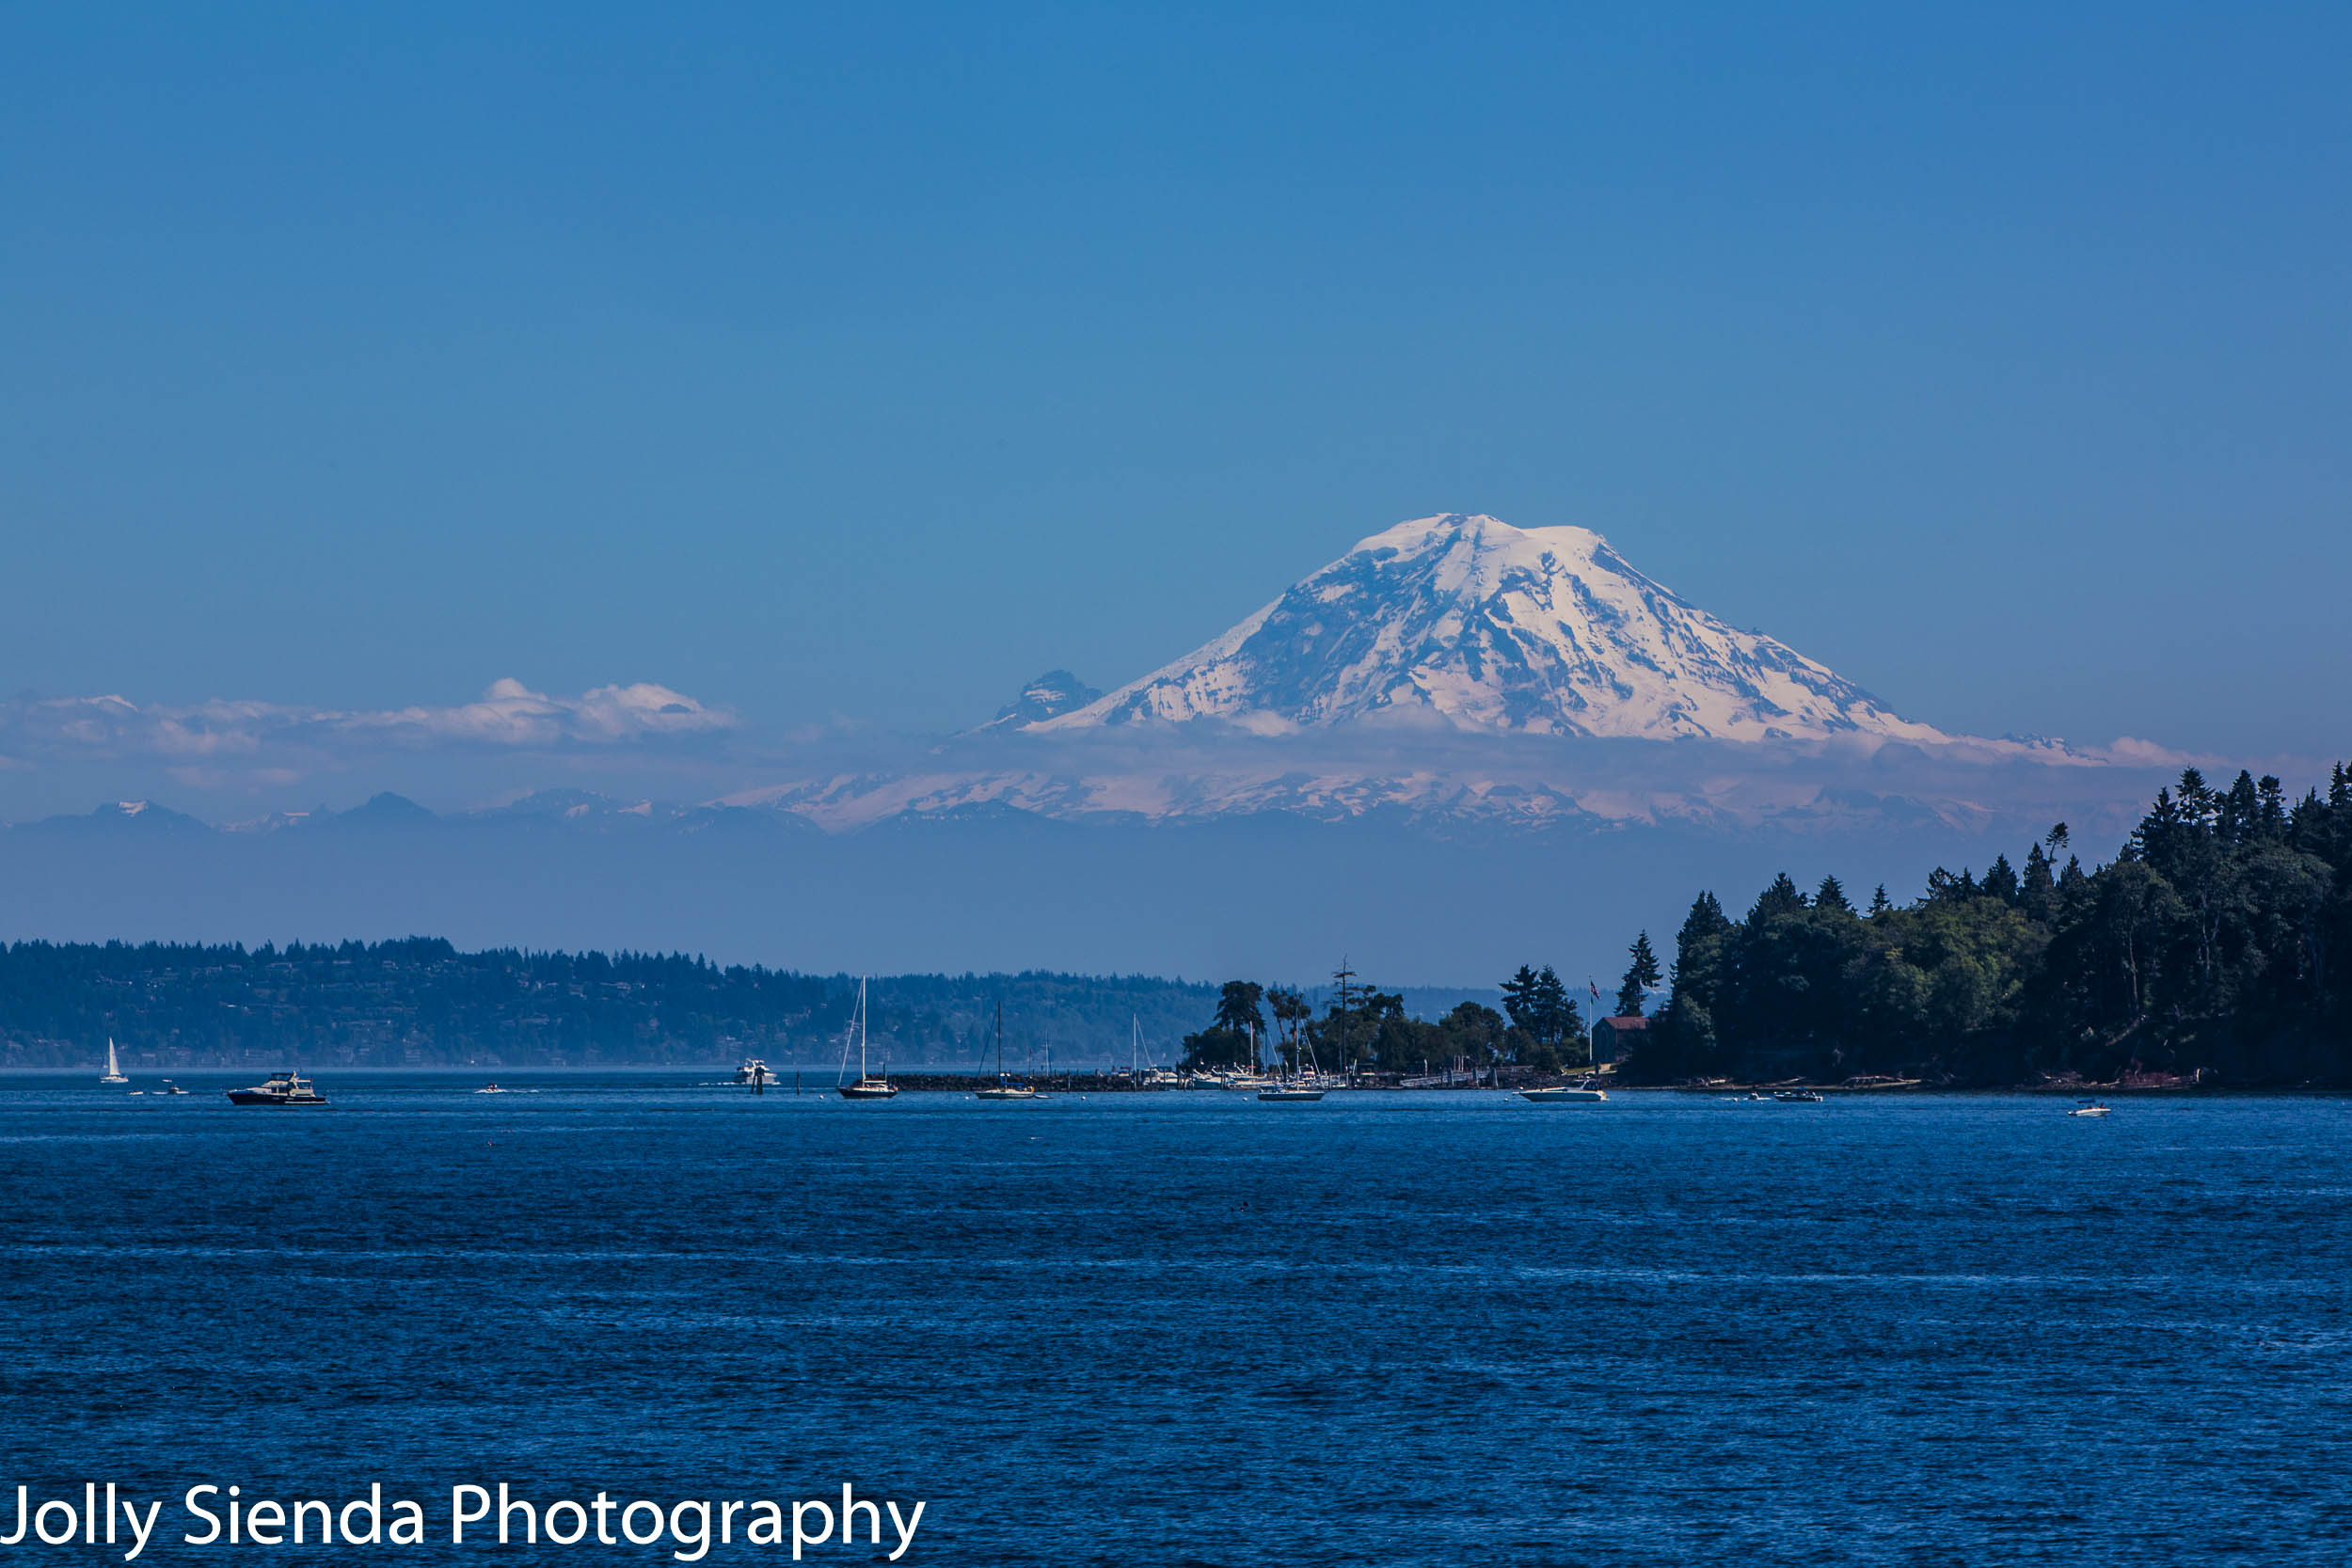 Mount Rainier with a cloud band towers over the Puget Sound and